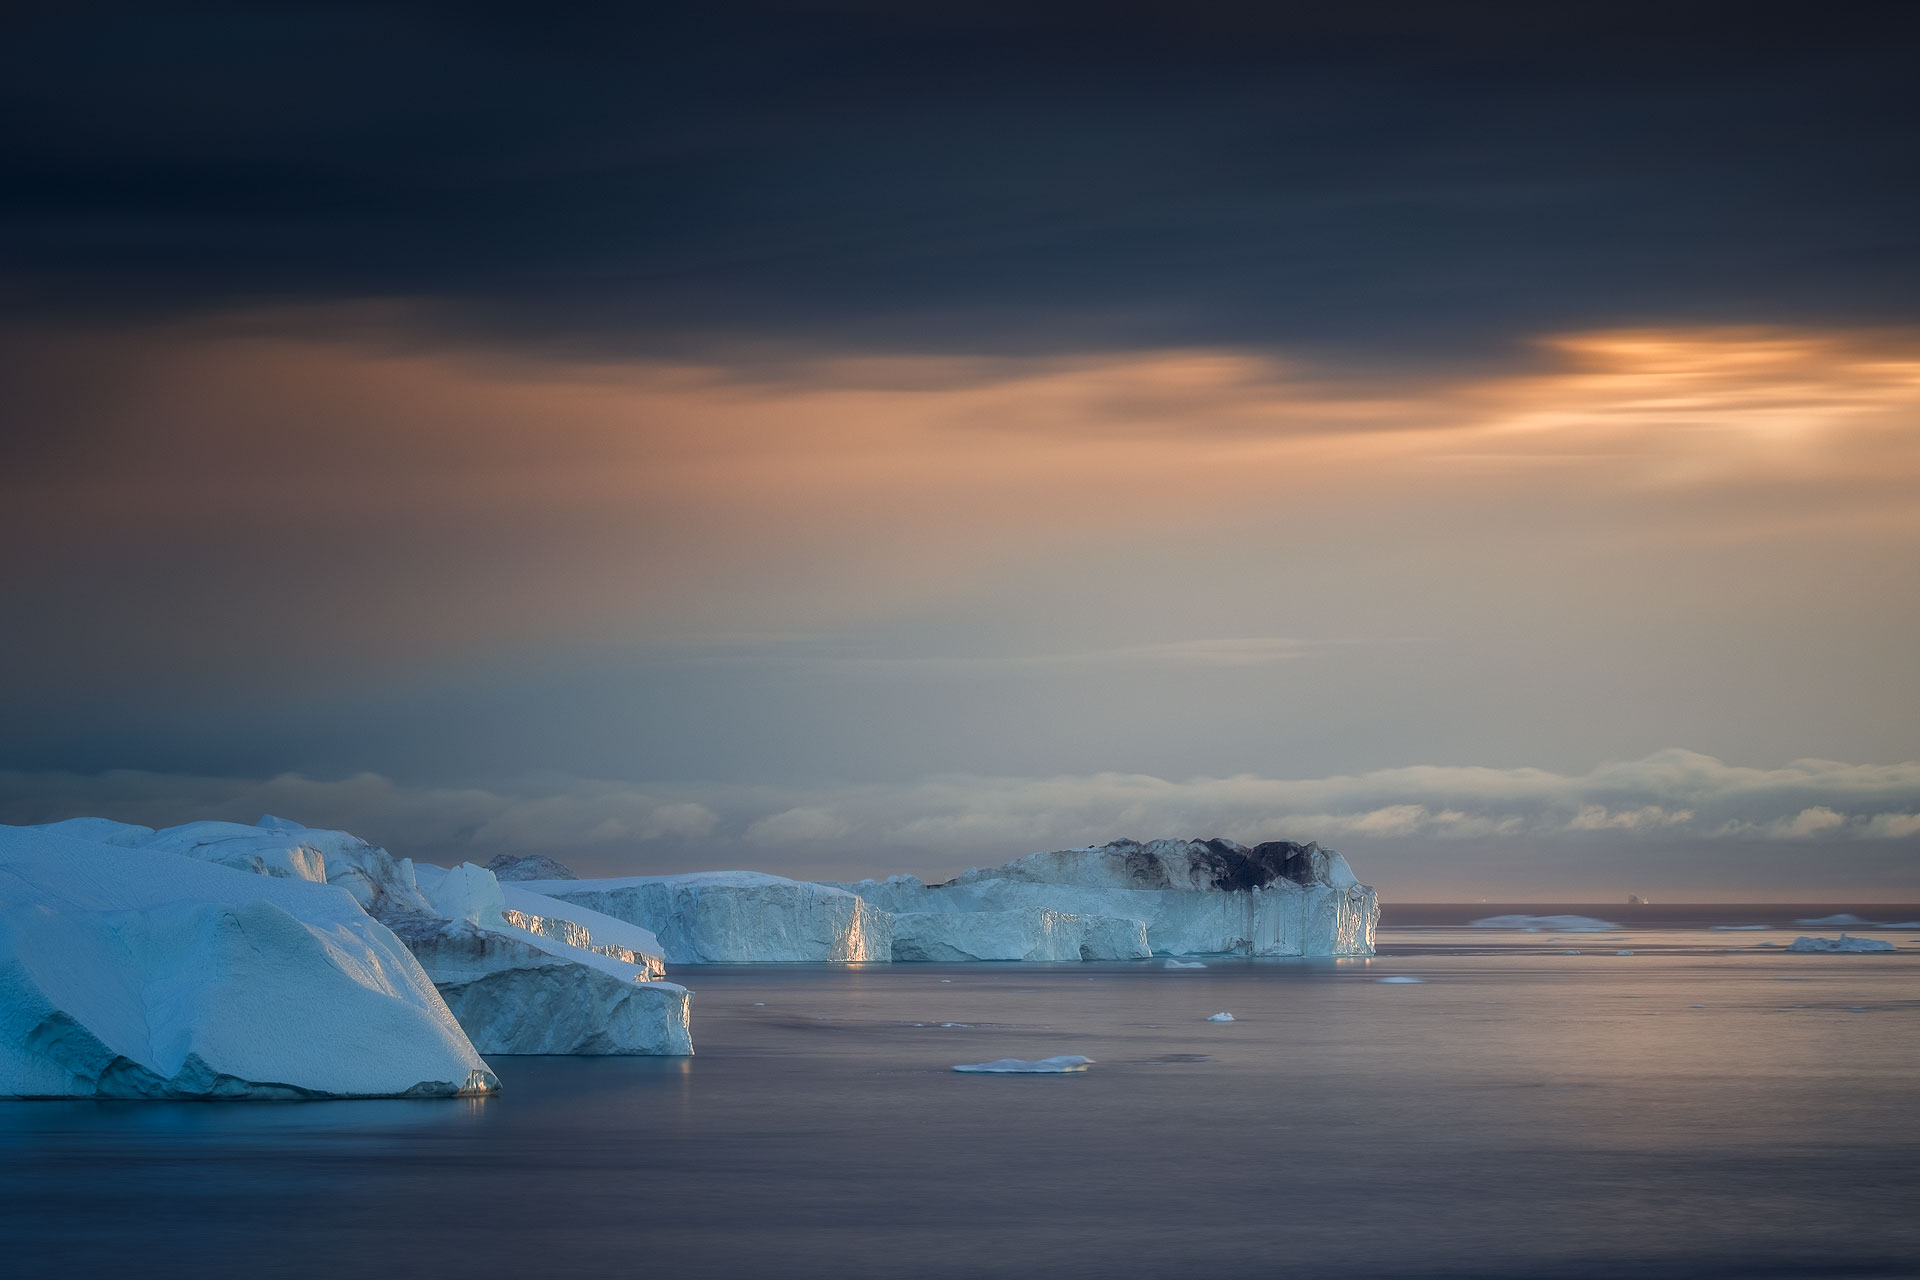 Golden hour over the sea with icebergs in the foreground